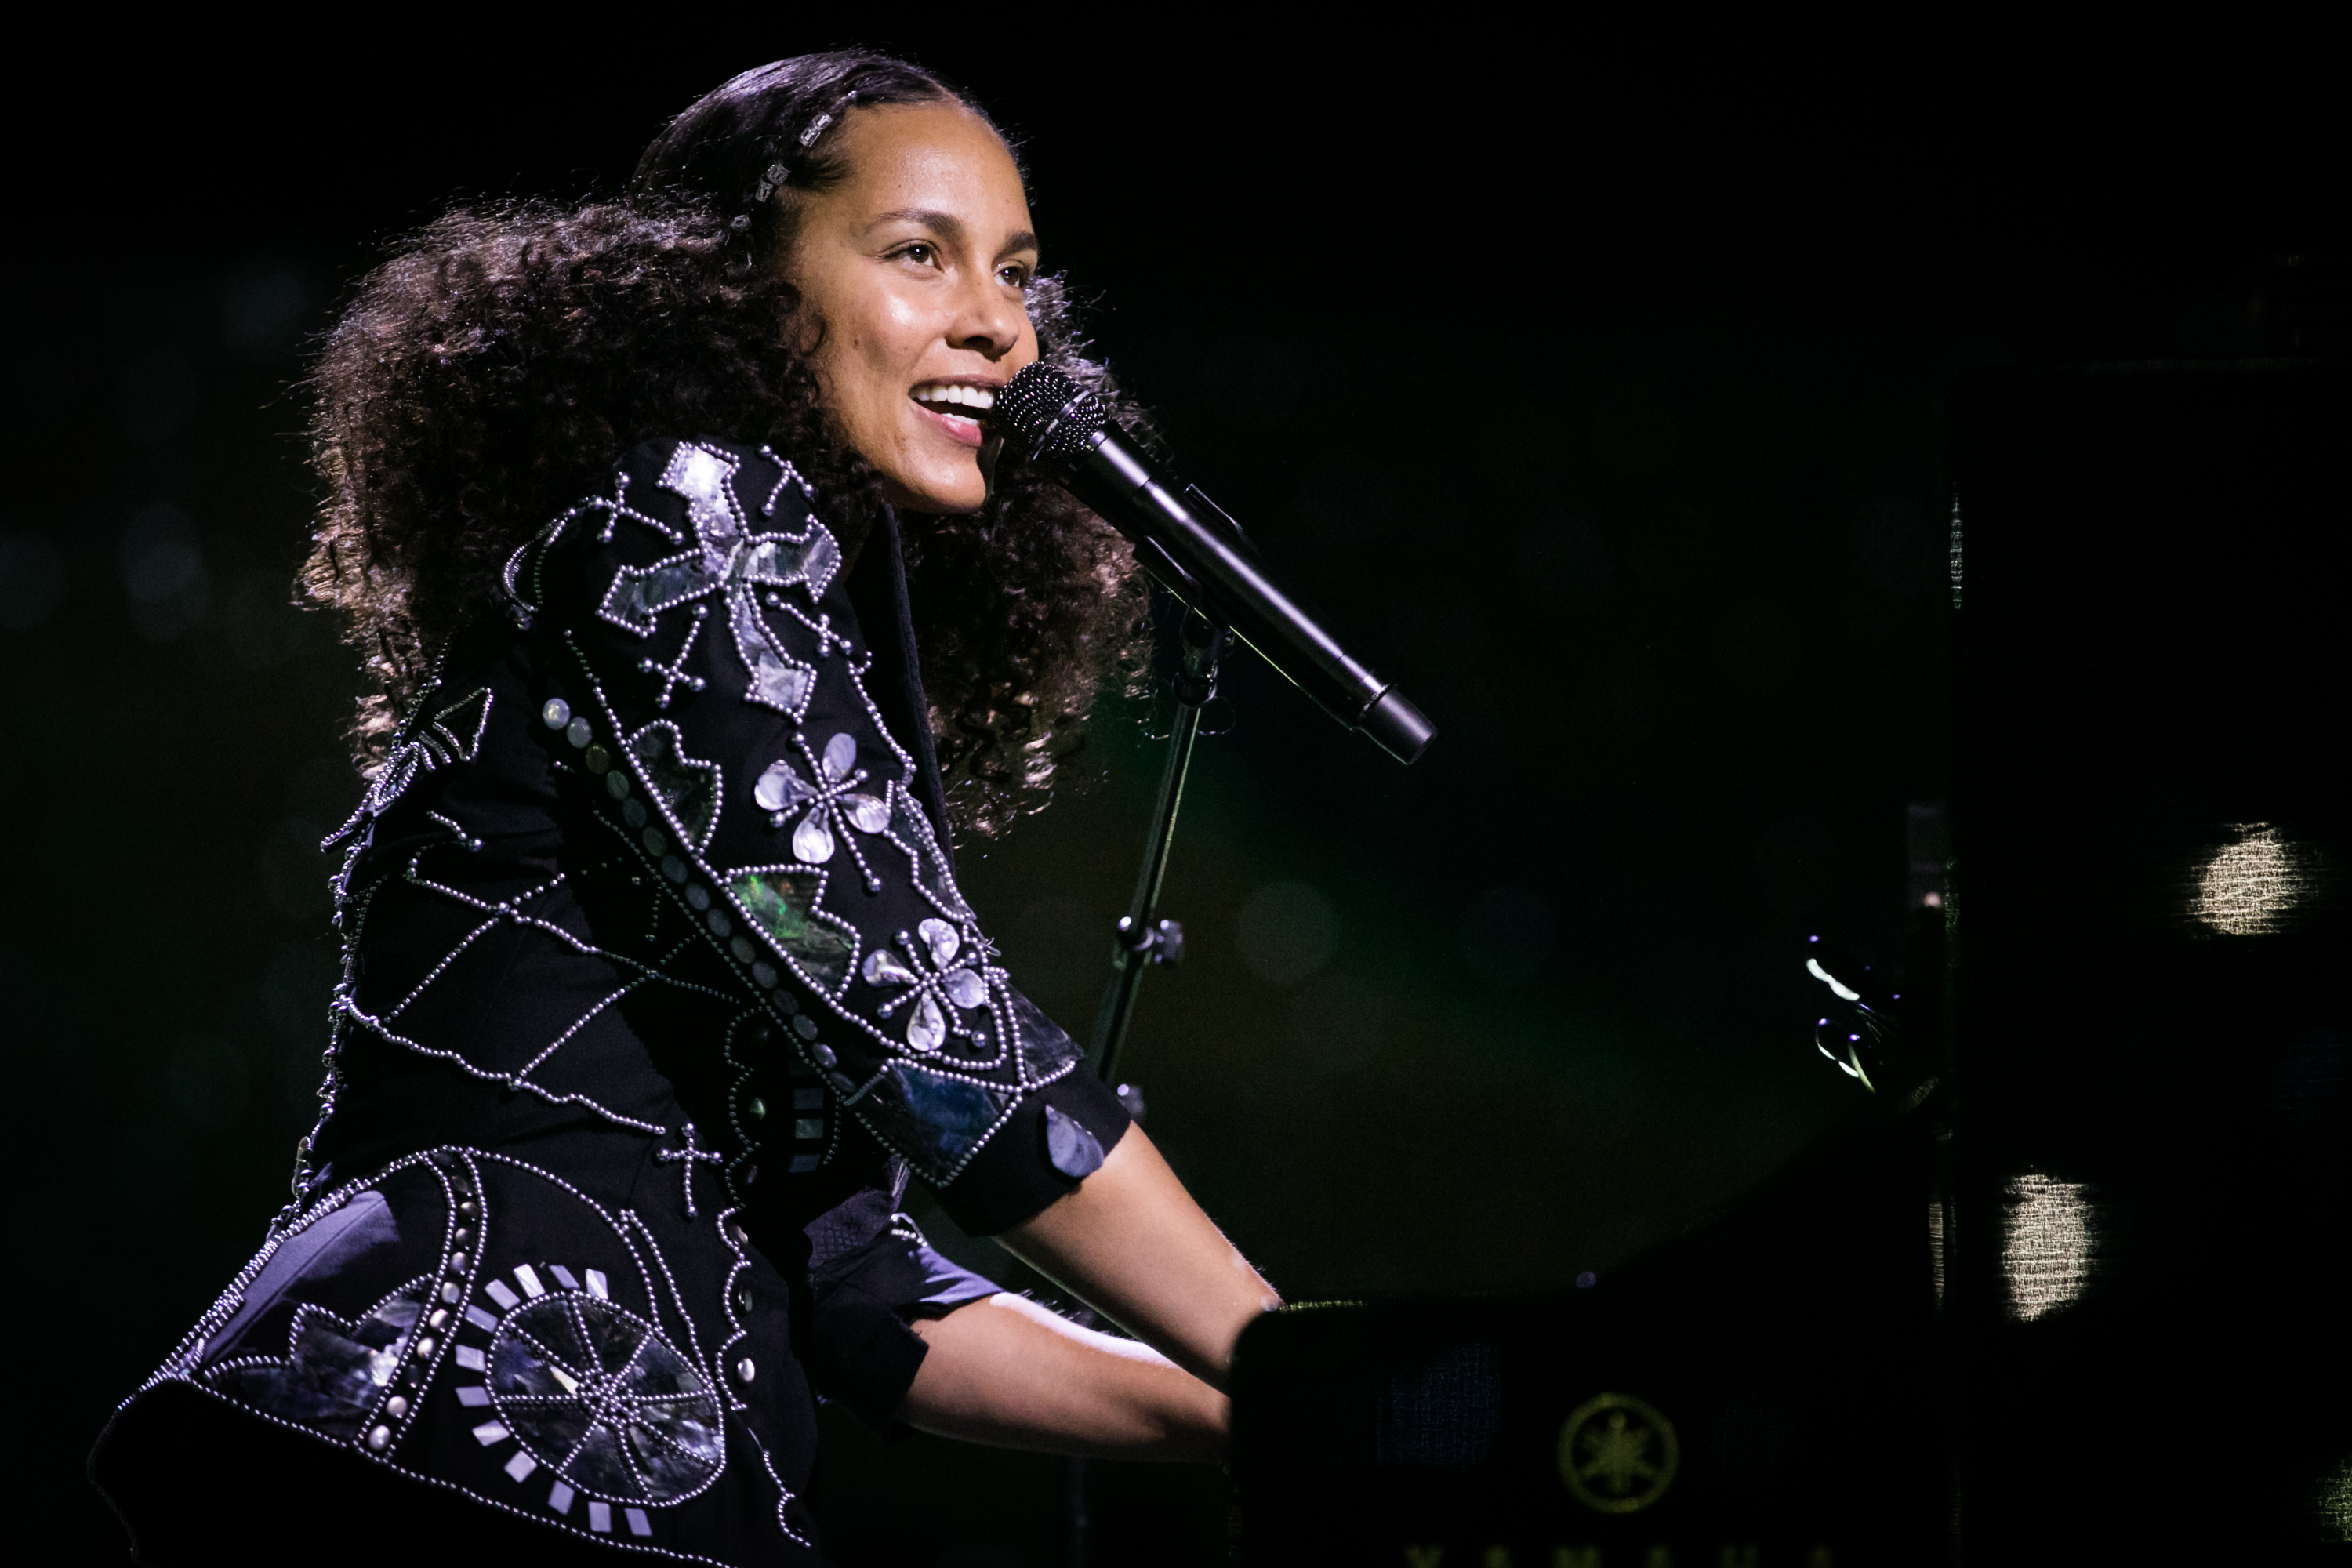 Alicia Keys Announced As Host For The 62nd Annual GRAMMY Awards On CBS